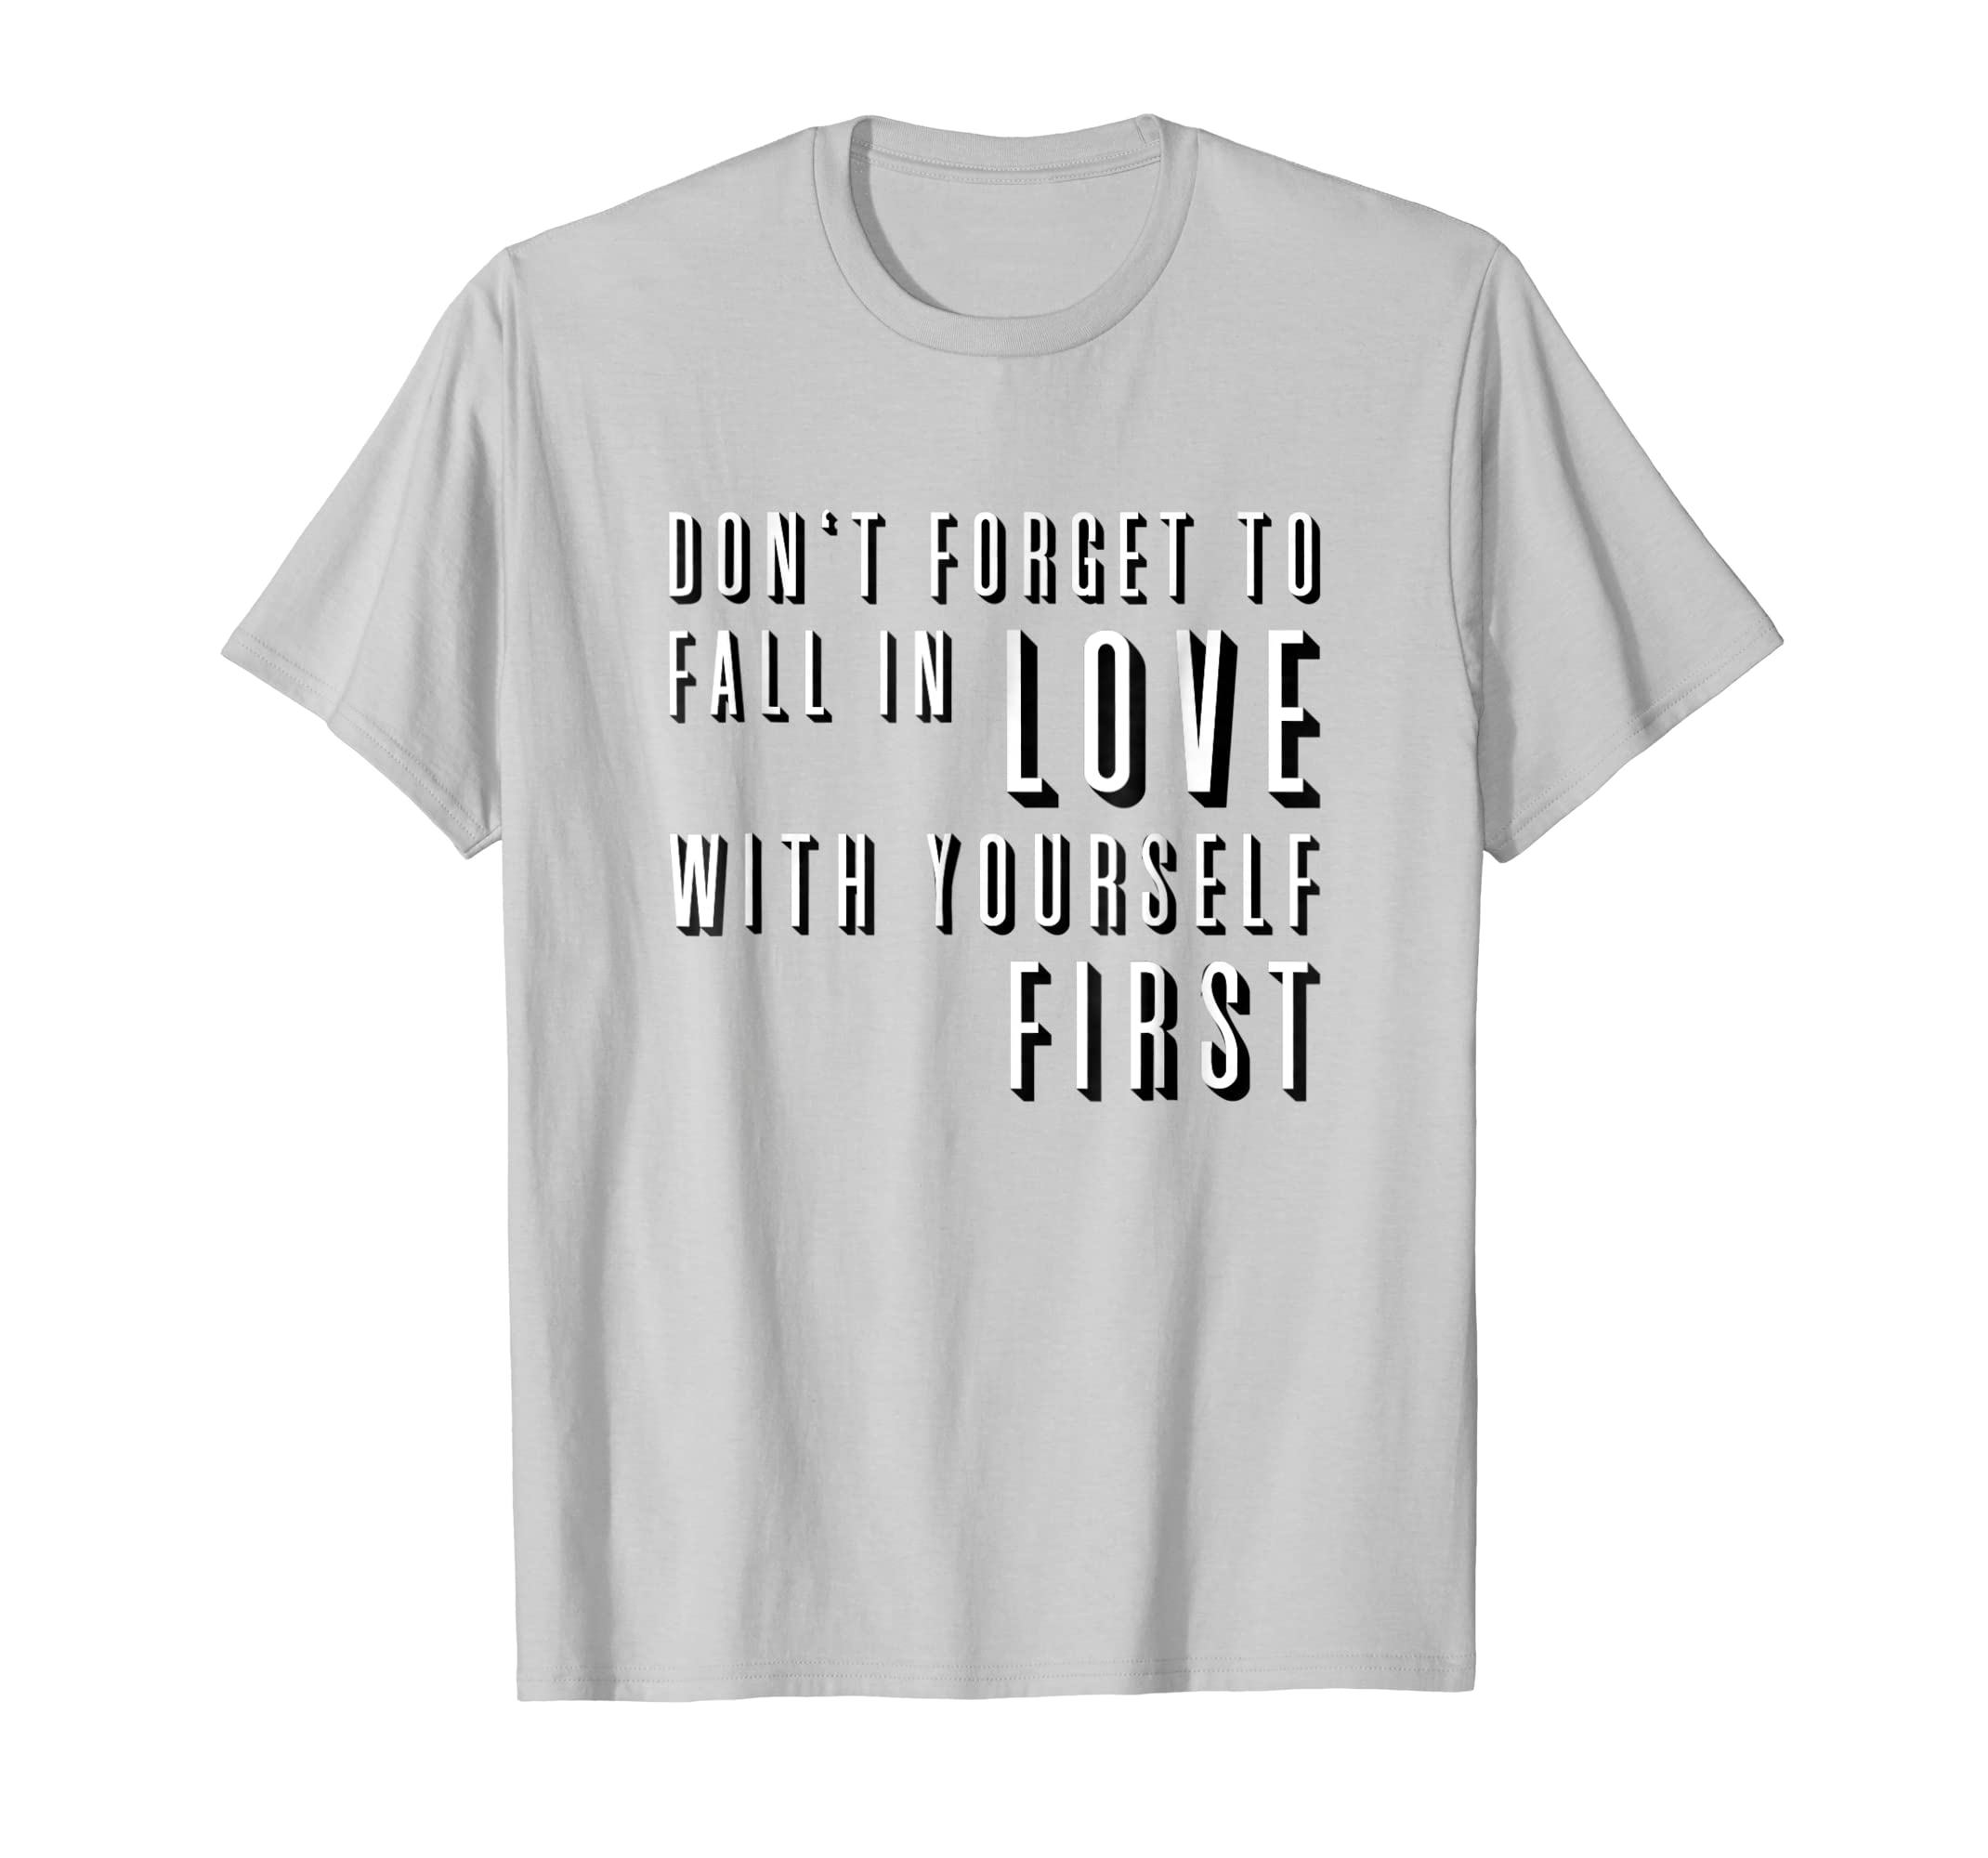 Amazoncom Dont Forget To Fall In Love With Yourself First T Shirt